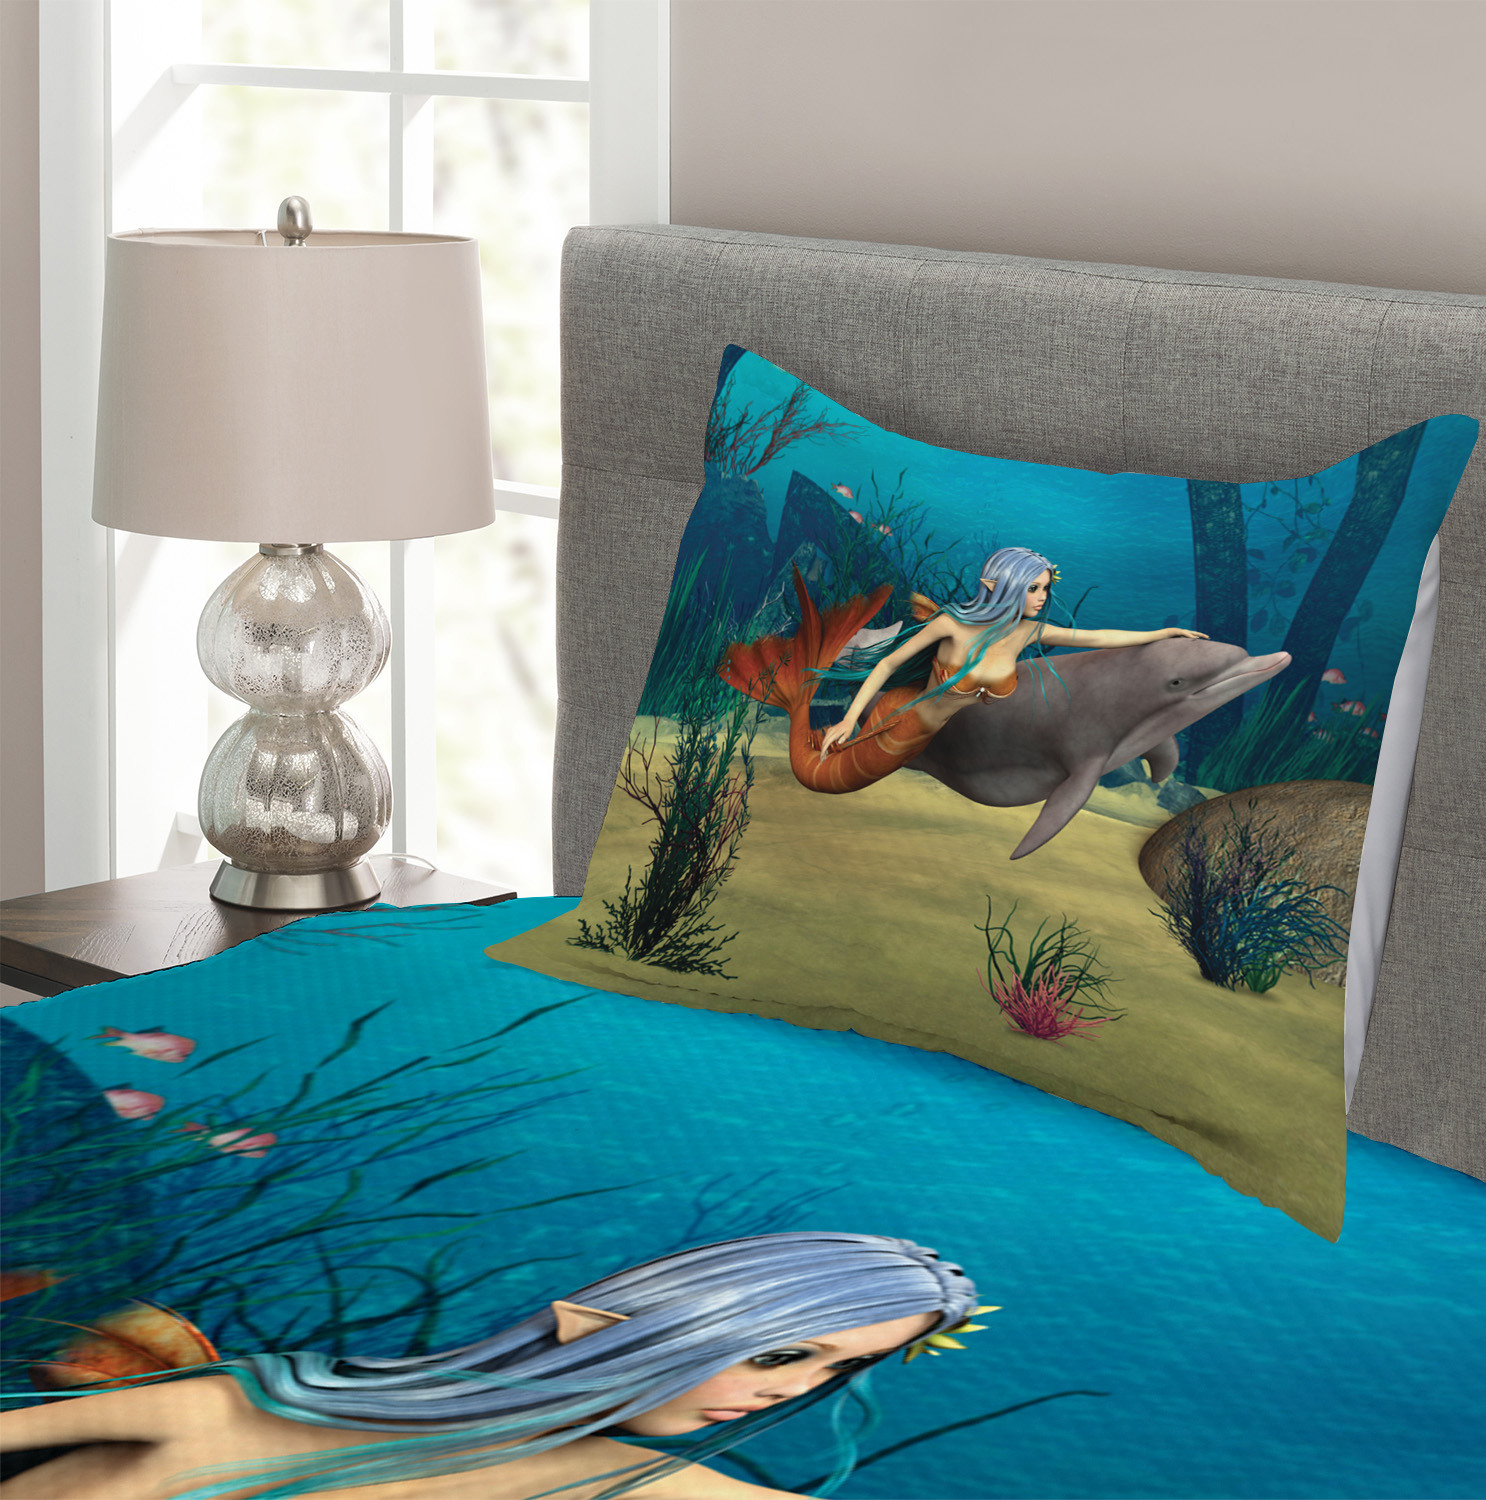 Ocean Quilted Bedspread /& Pillow Shams Set Dolphin Fish Mermaids Print